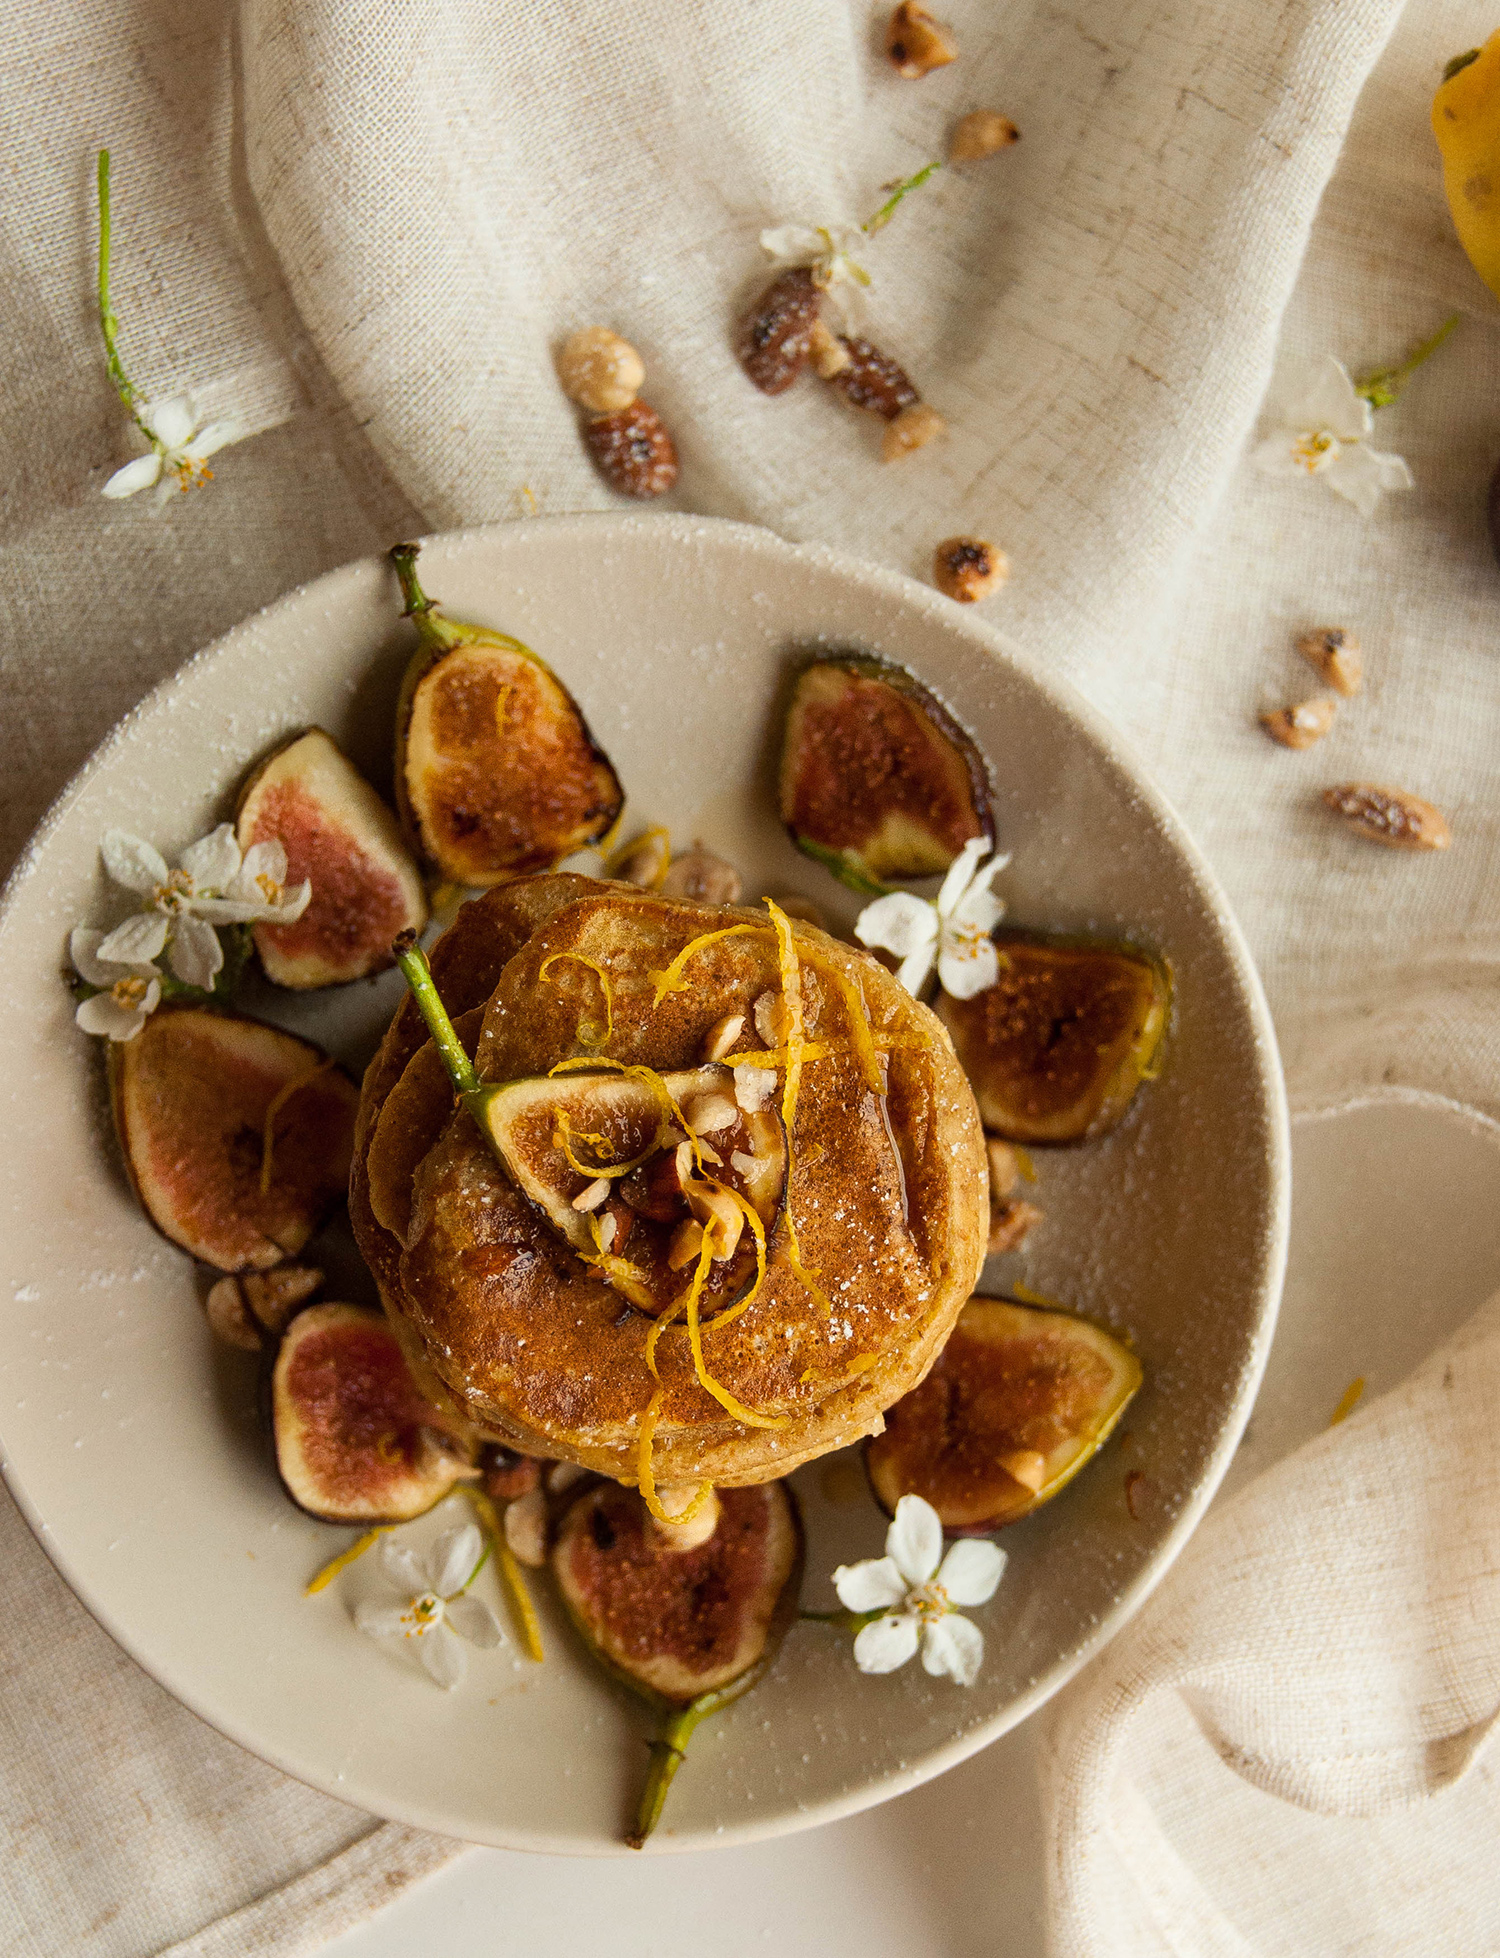 Lemon Ricotta Pancakes With Sauteed Apples Recipes — Dishmaps